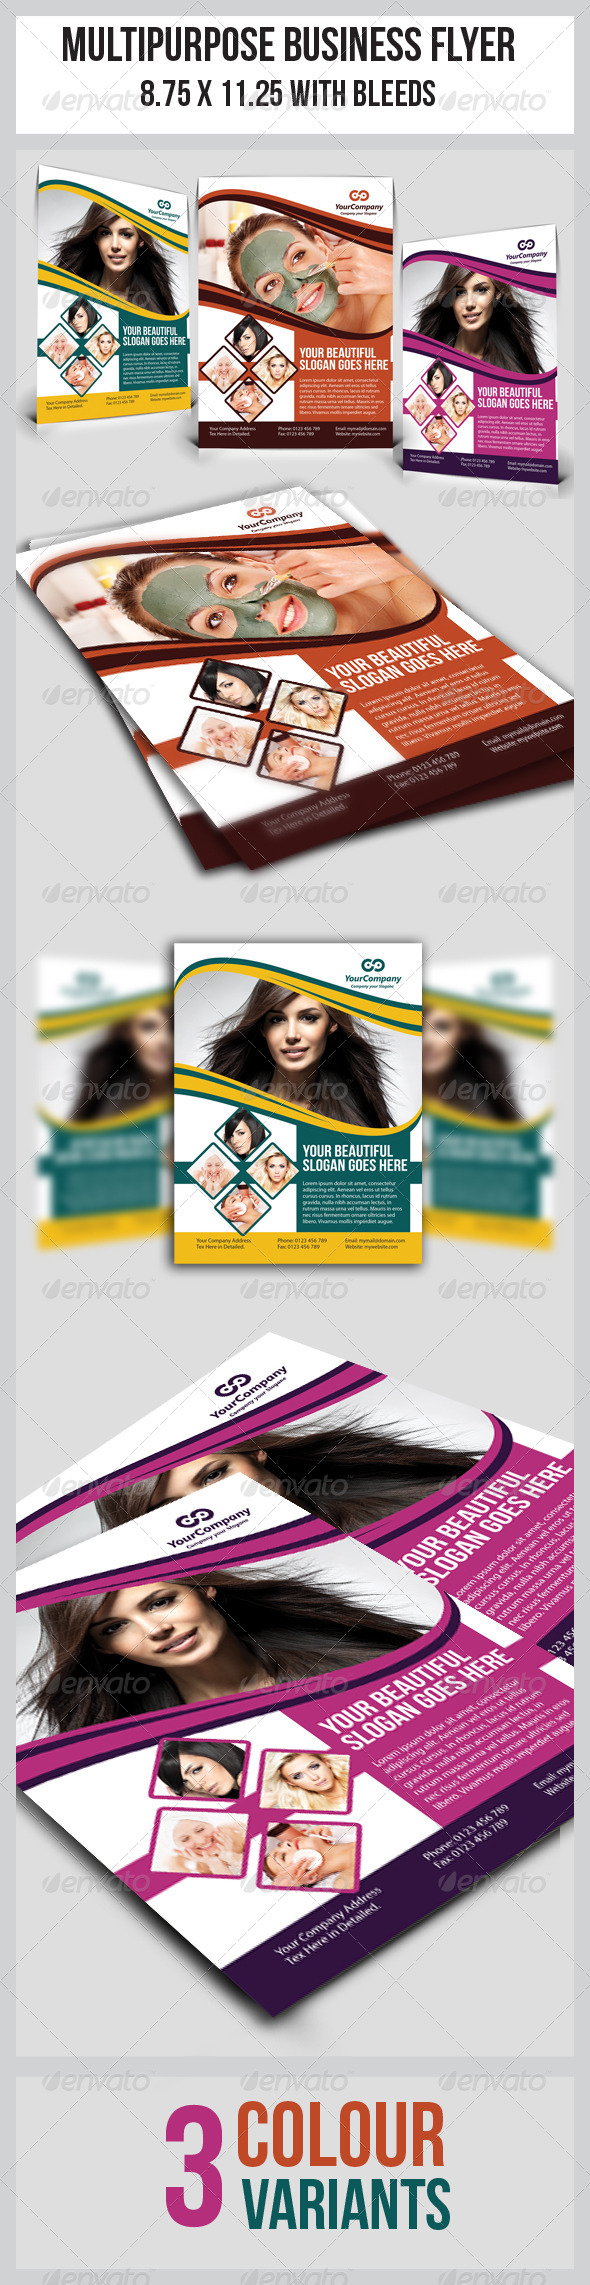 Multipurpose Business Flyer - Flyers Print Templates